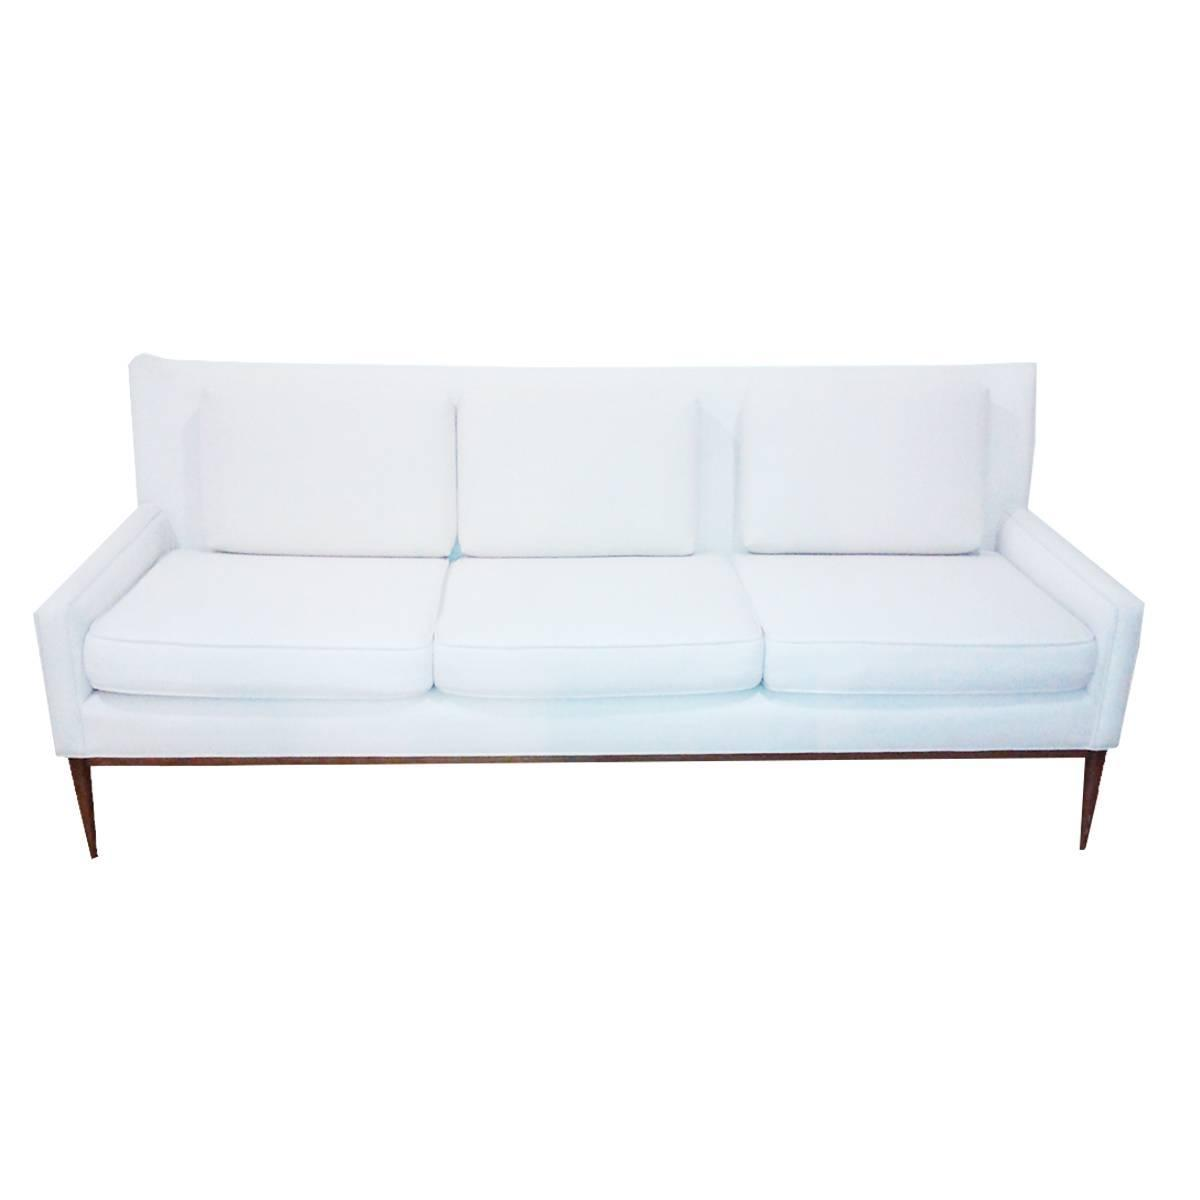 White Mid Century Modern Sofa For Sale At 1stdibs